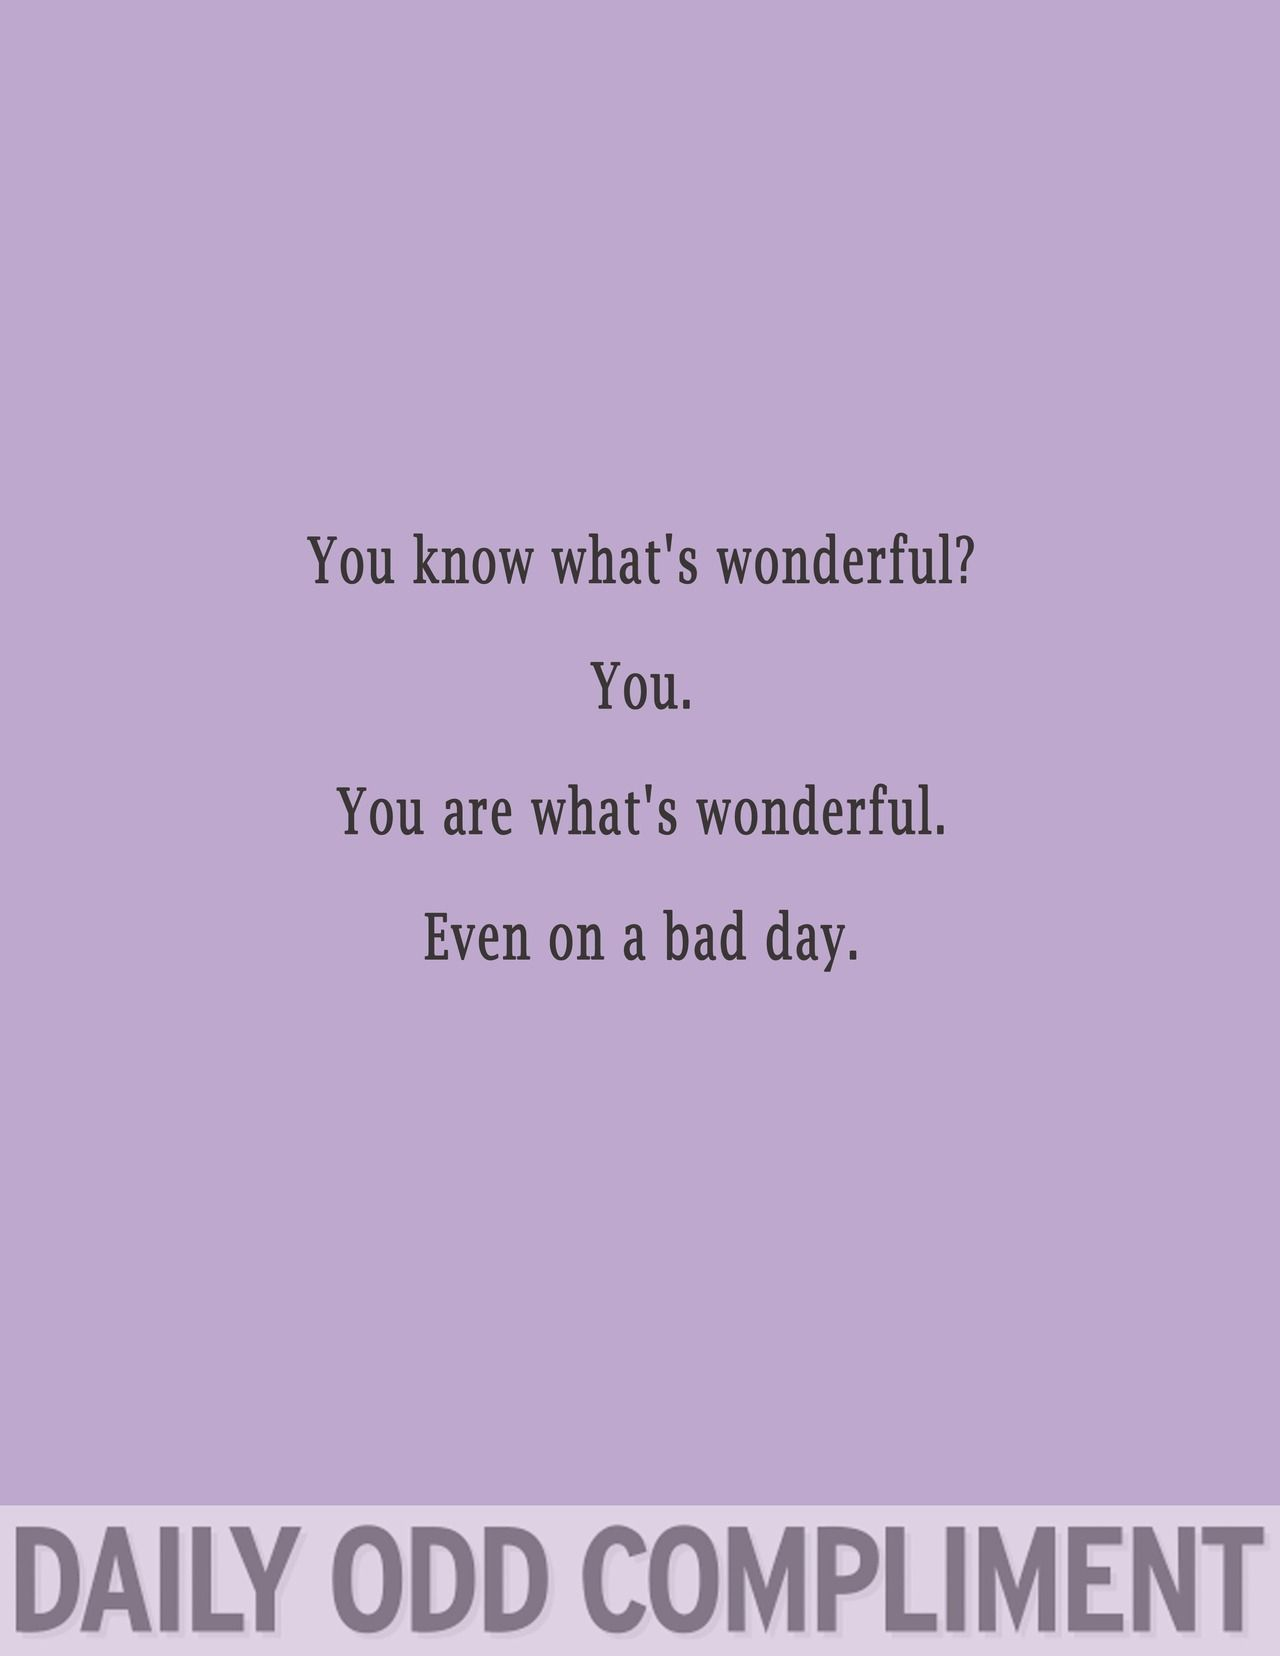 Even On A Bad Day Daily Odd Odd Compliment Daily Odd Compliment